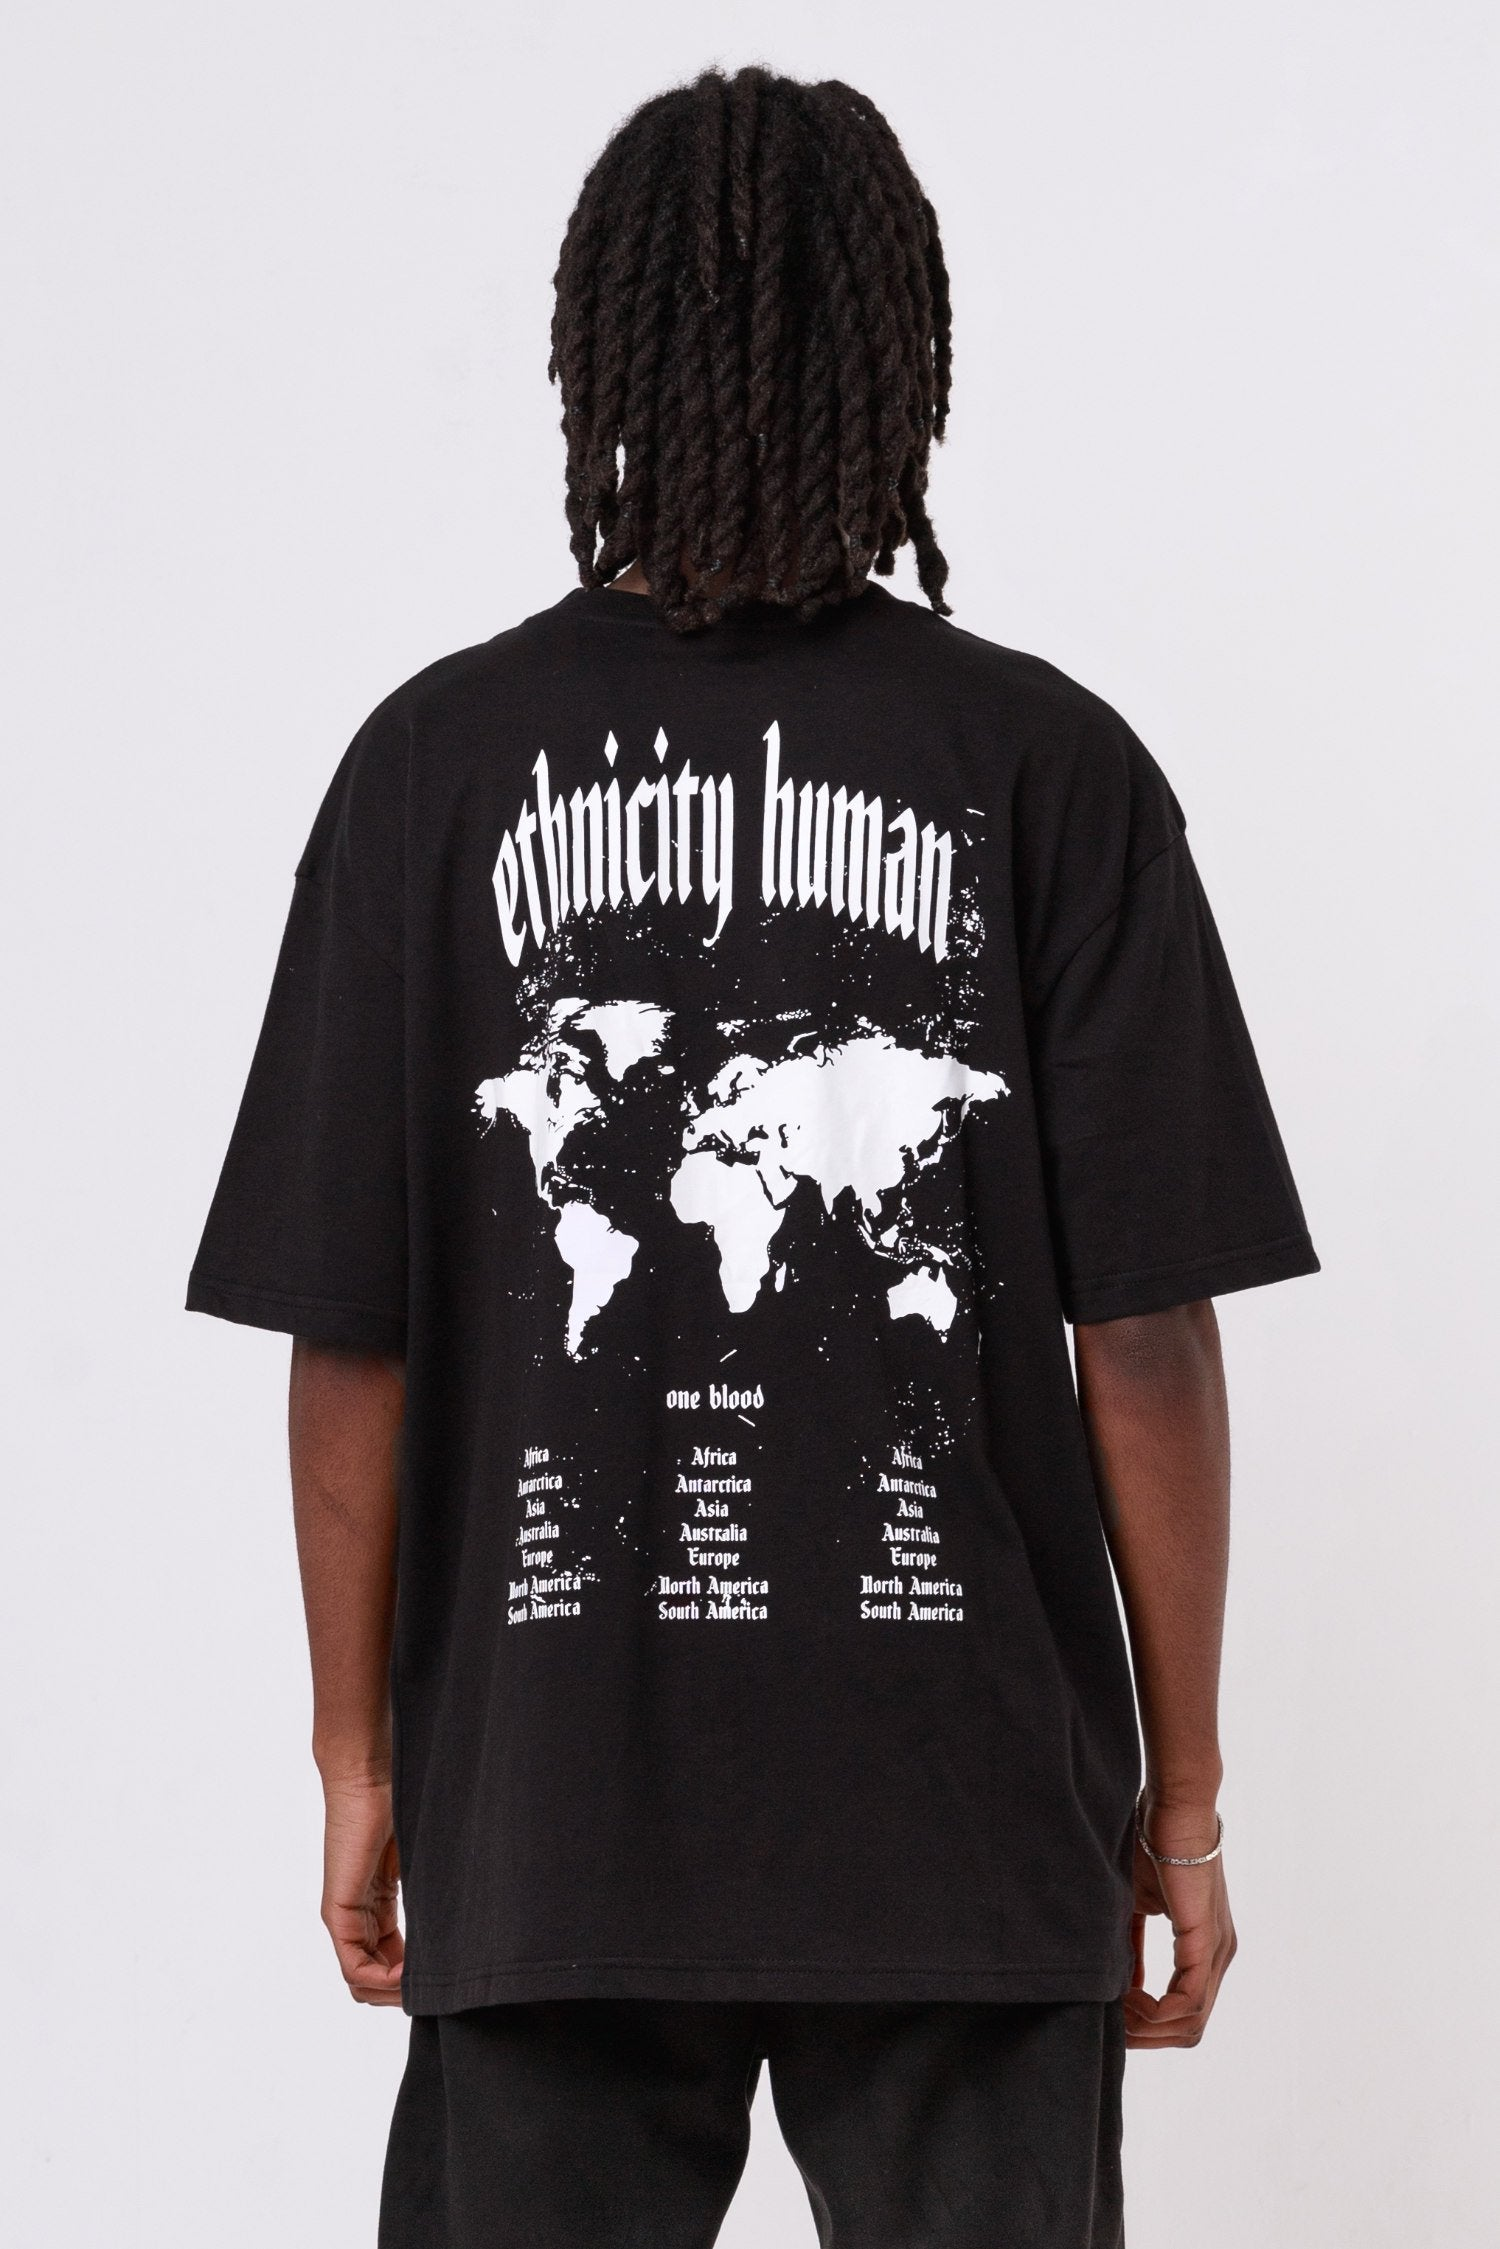 World Oversized Tee Black T-SHIRT One blood